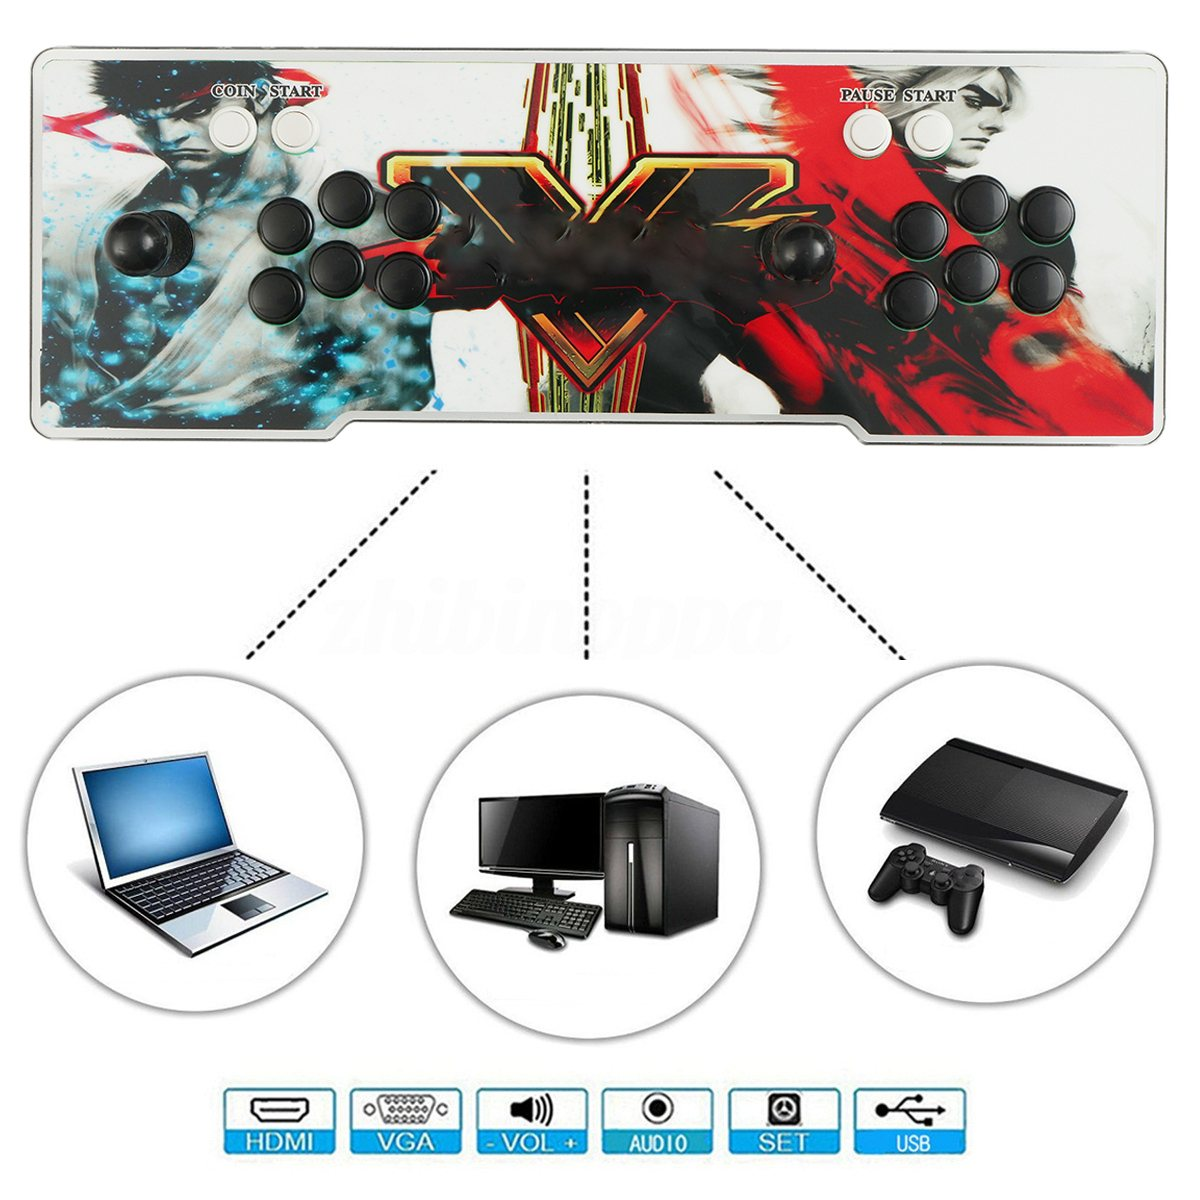 2000 In 1 Heroes Box 5 HDMI Arcade Classic Video Game Console Fight Games Gamepad HD VGA arcade games kits multi video games 520 in 1 pcb game board kits just another pandora s box 3 cga